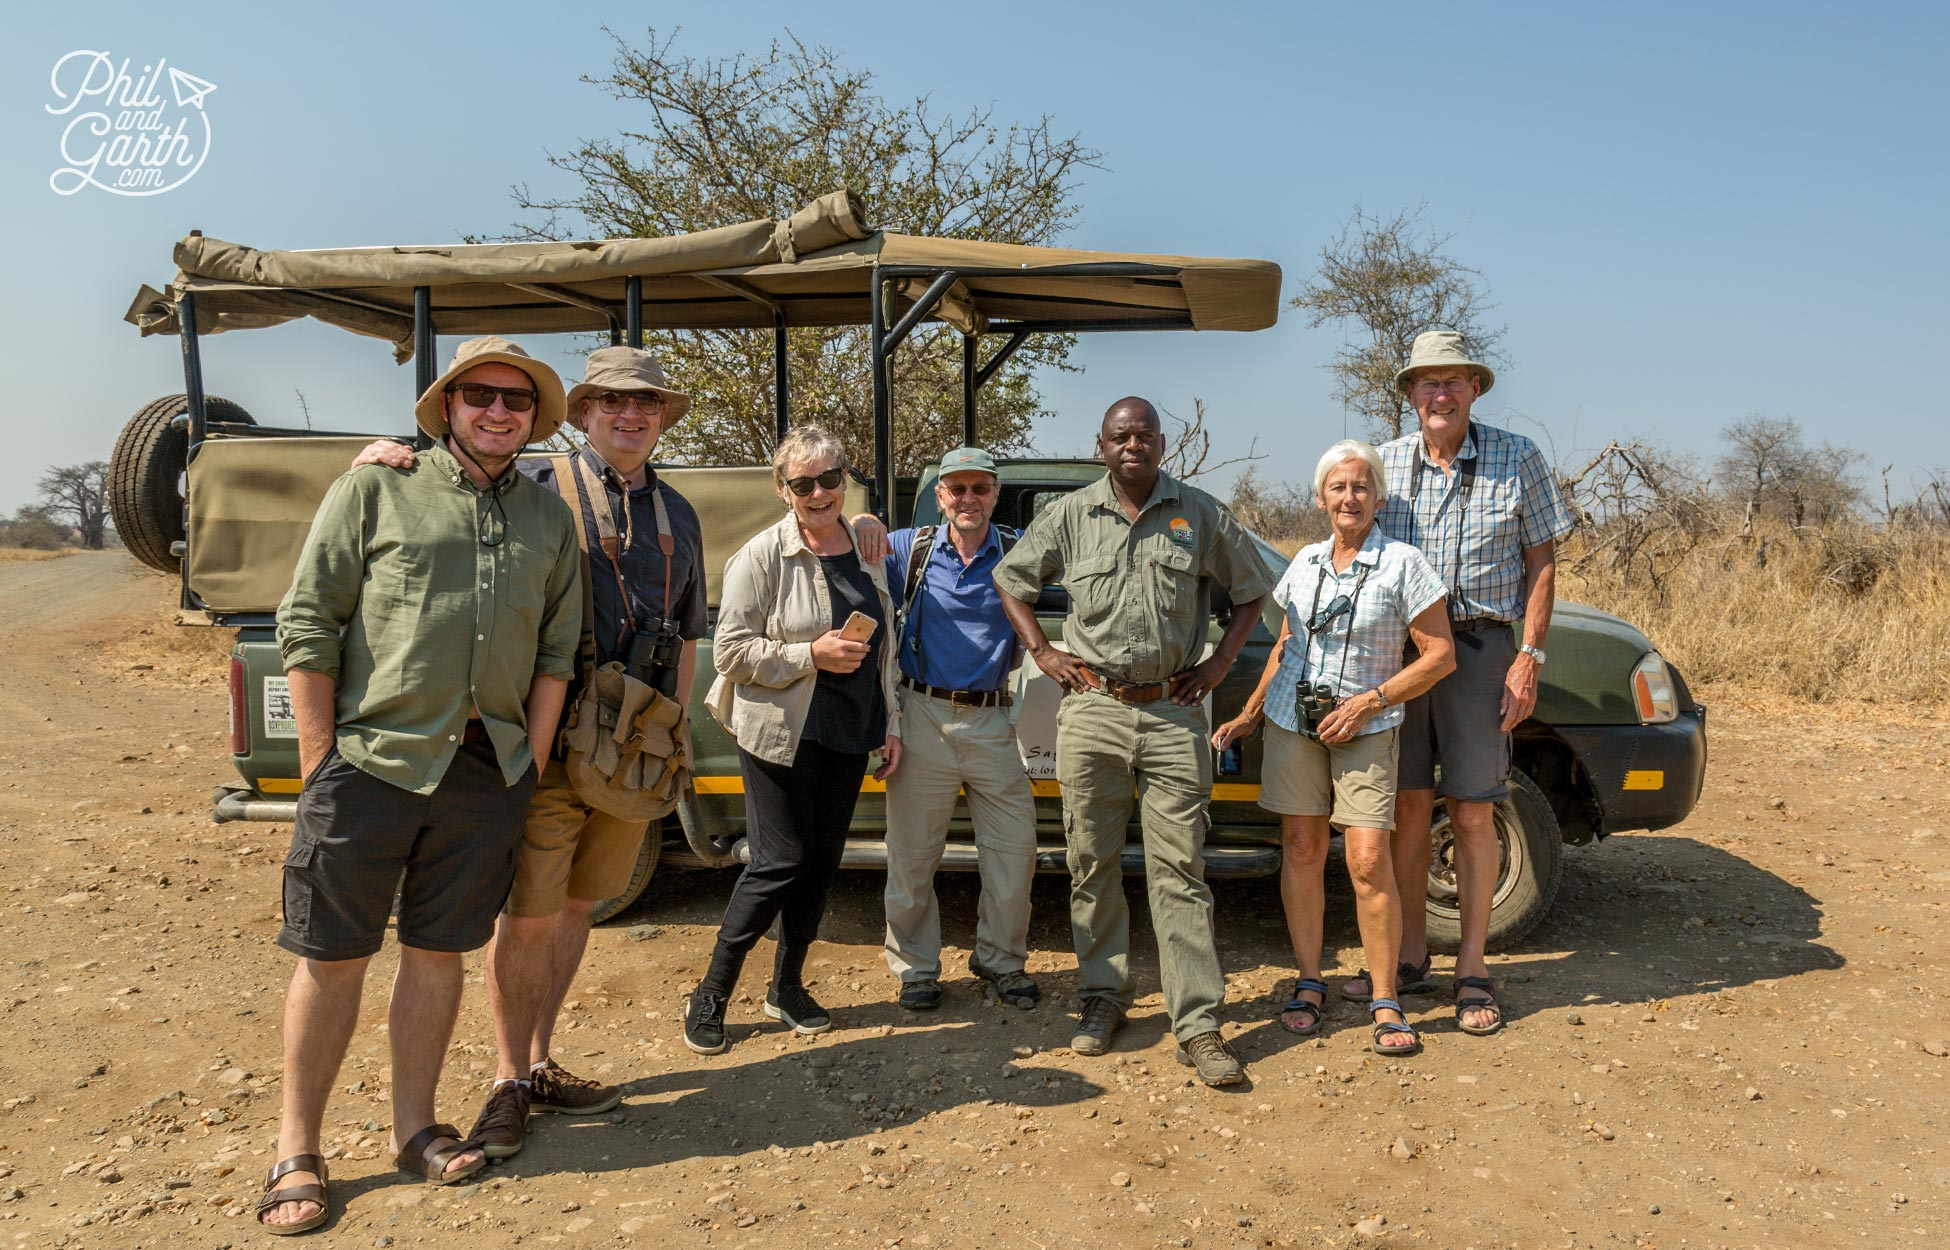 2 day Kruger National Park Safari - Time for a quick group shot with our guide Eric